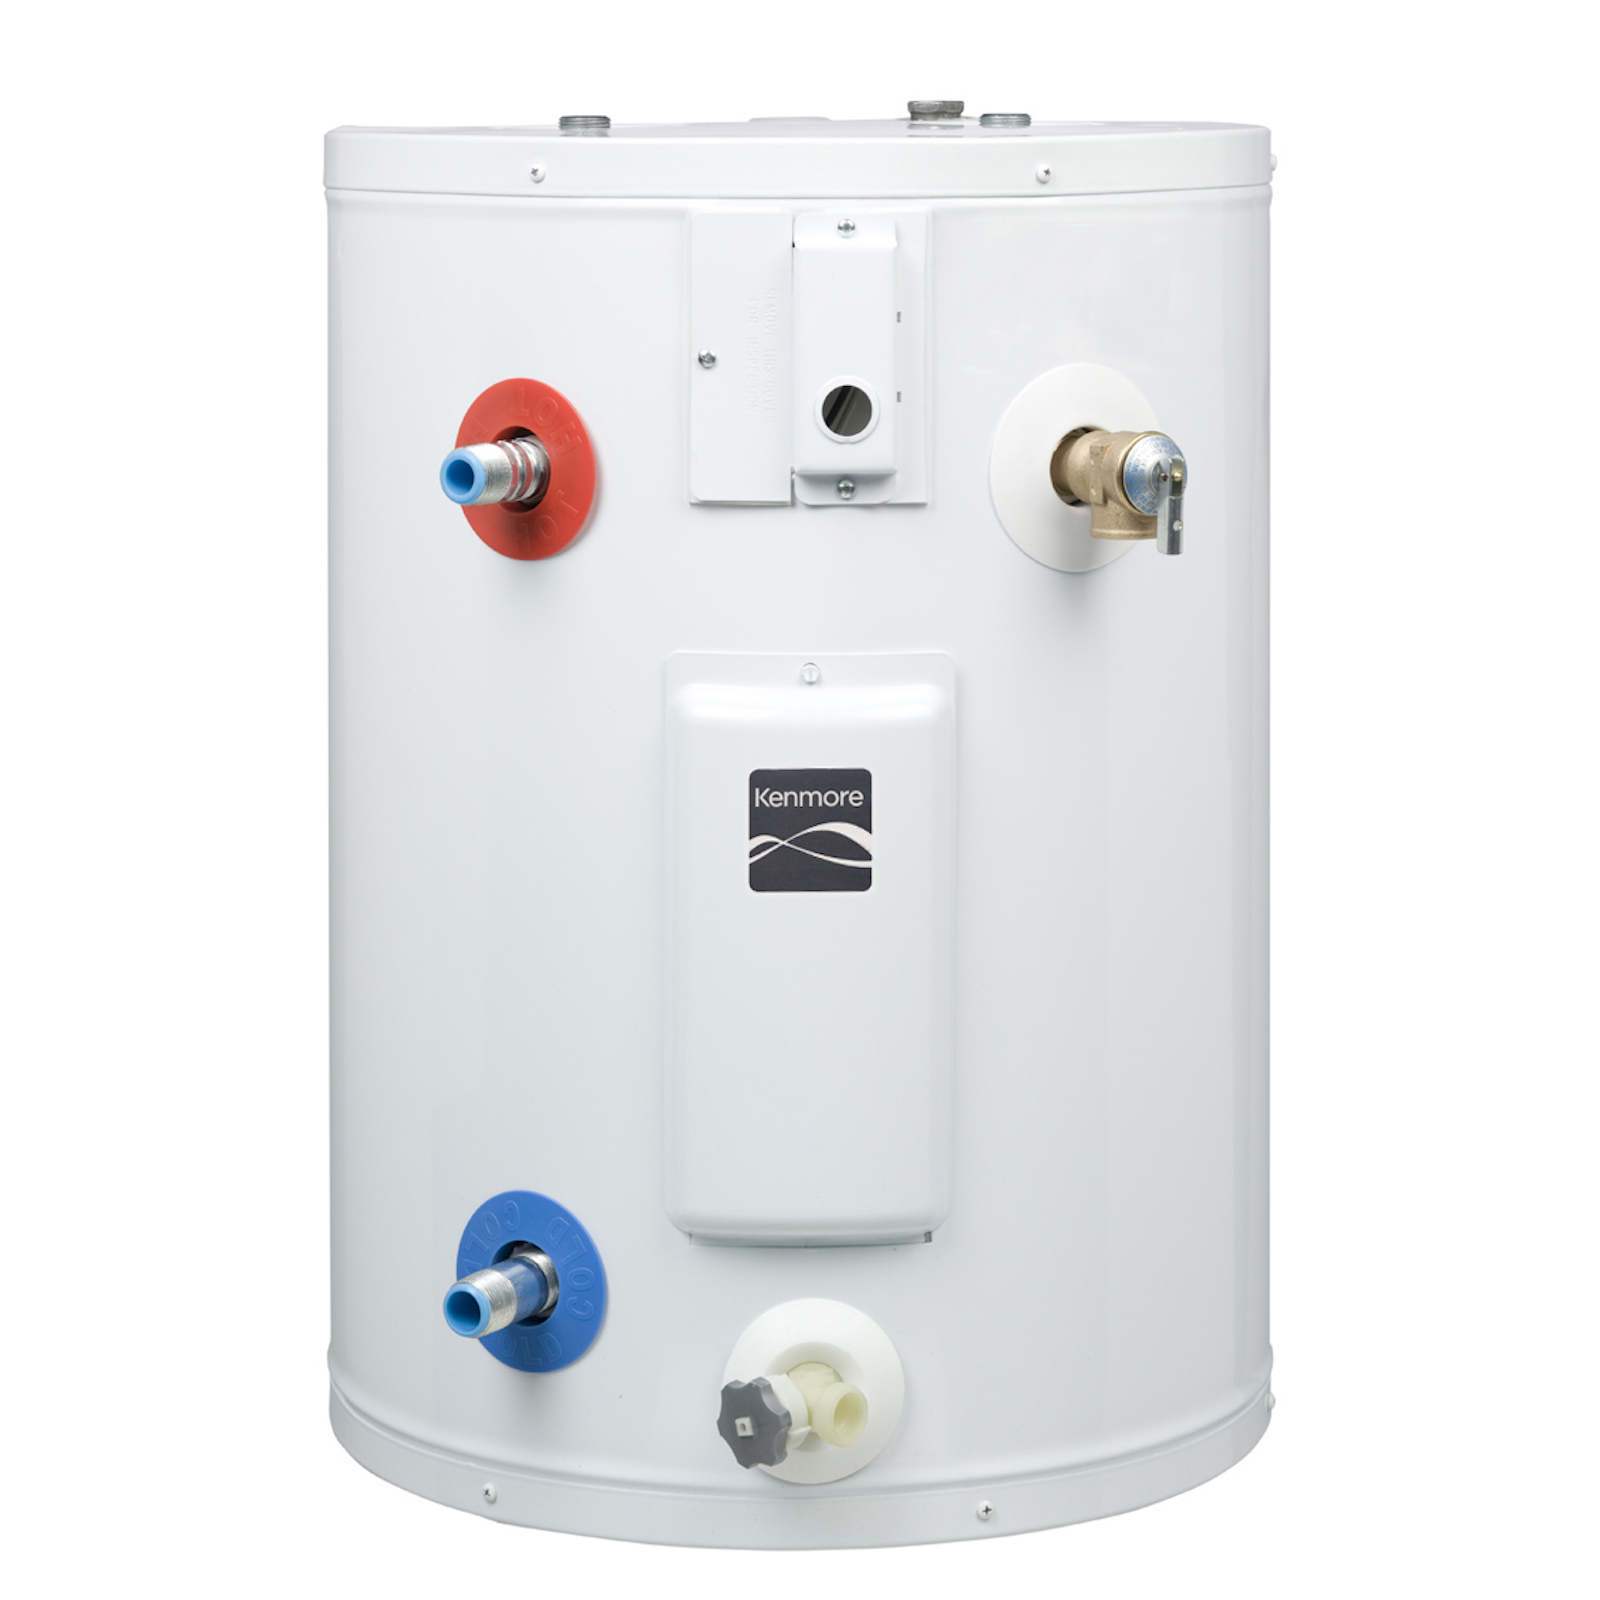 58630-28-gal-6-Year-Compact-Electric-Water-Heater